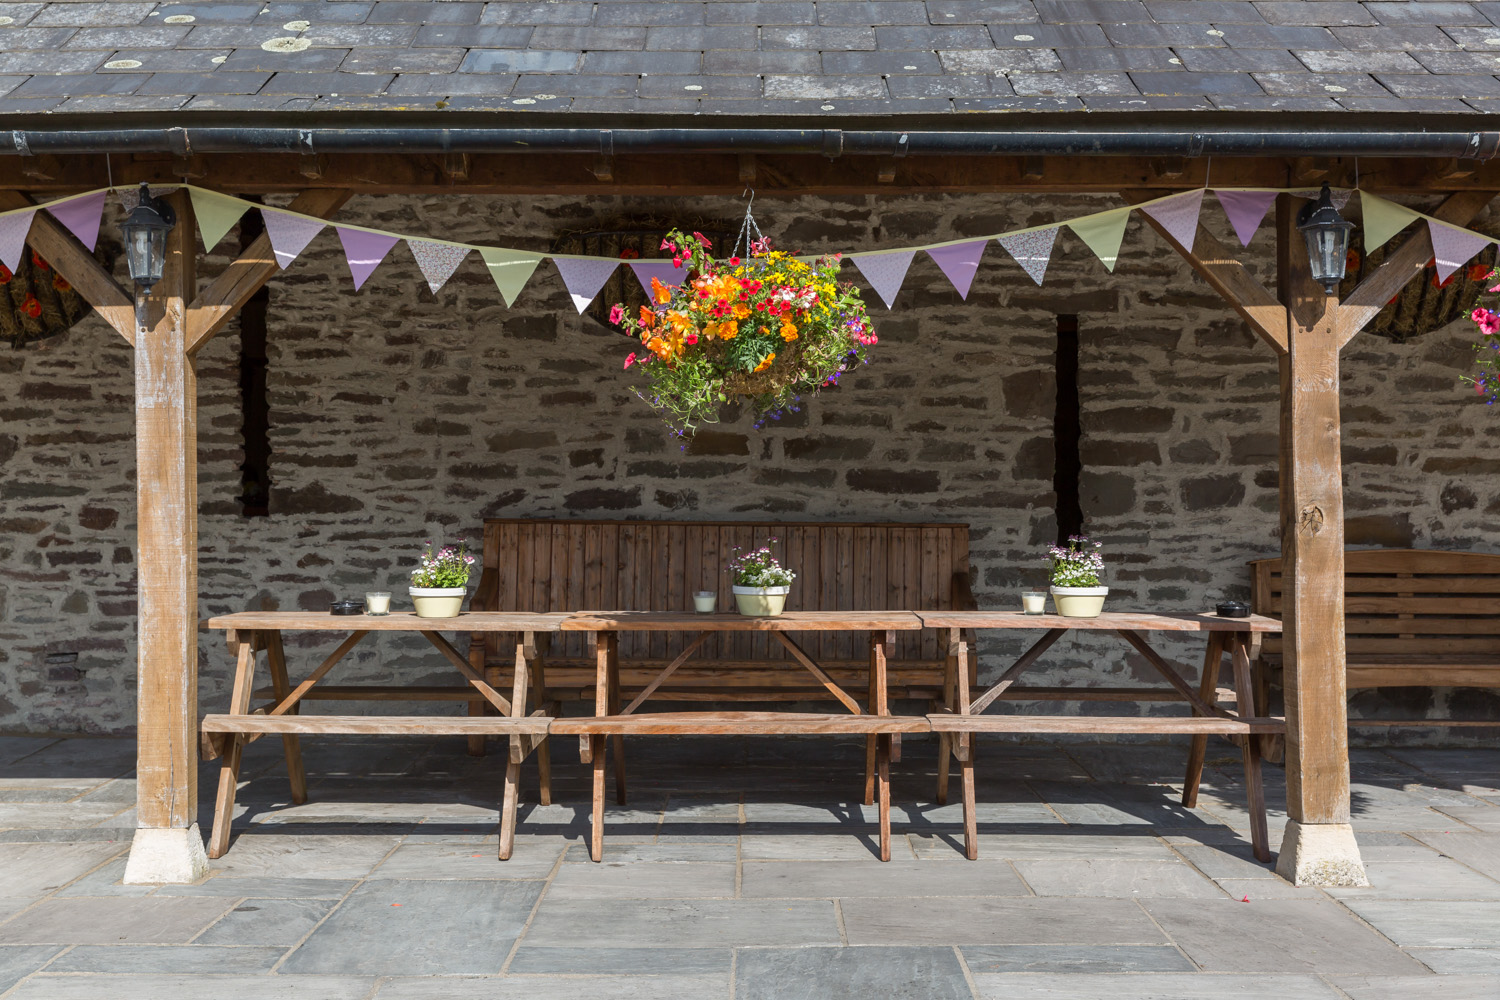 barn-brynich-wedding-photographer-brecon-wales-059.jpg